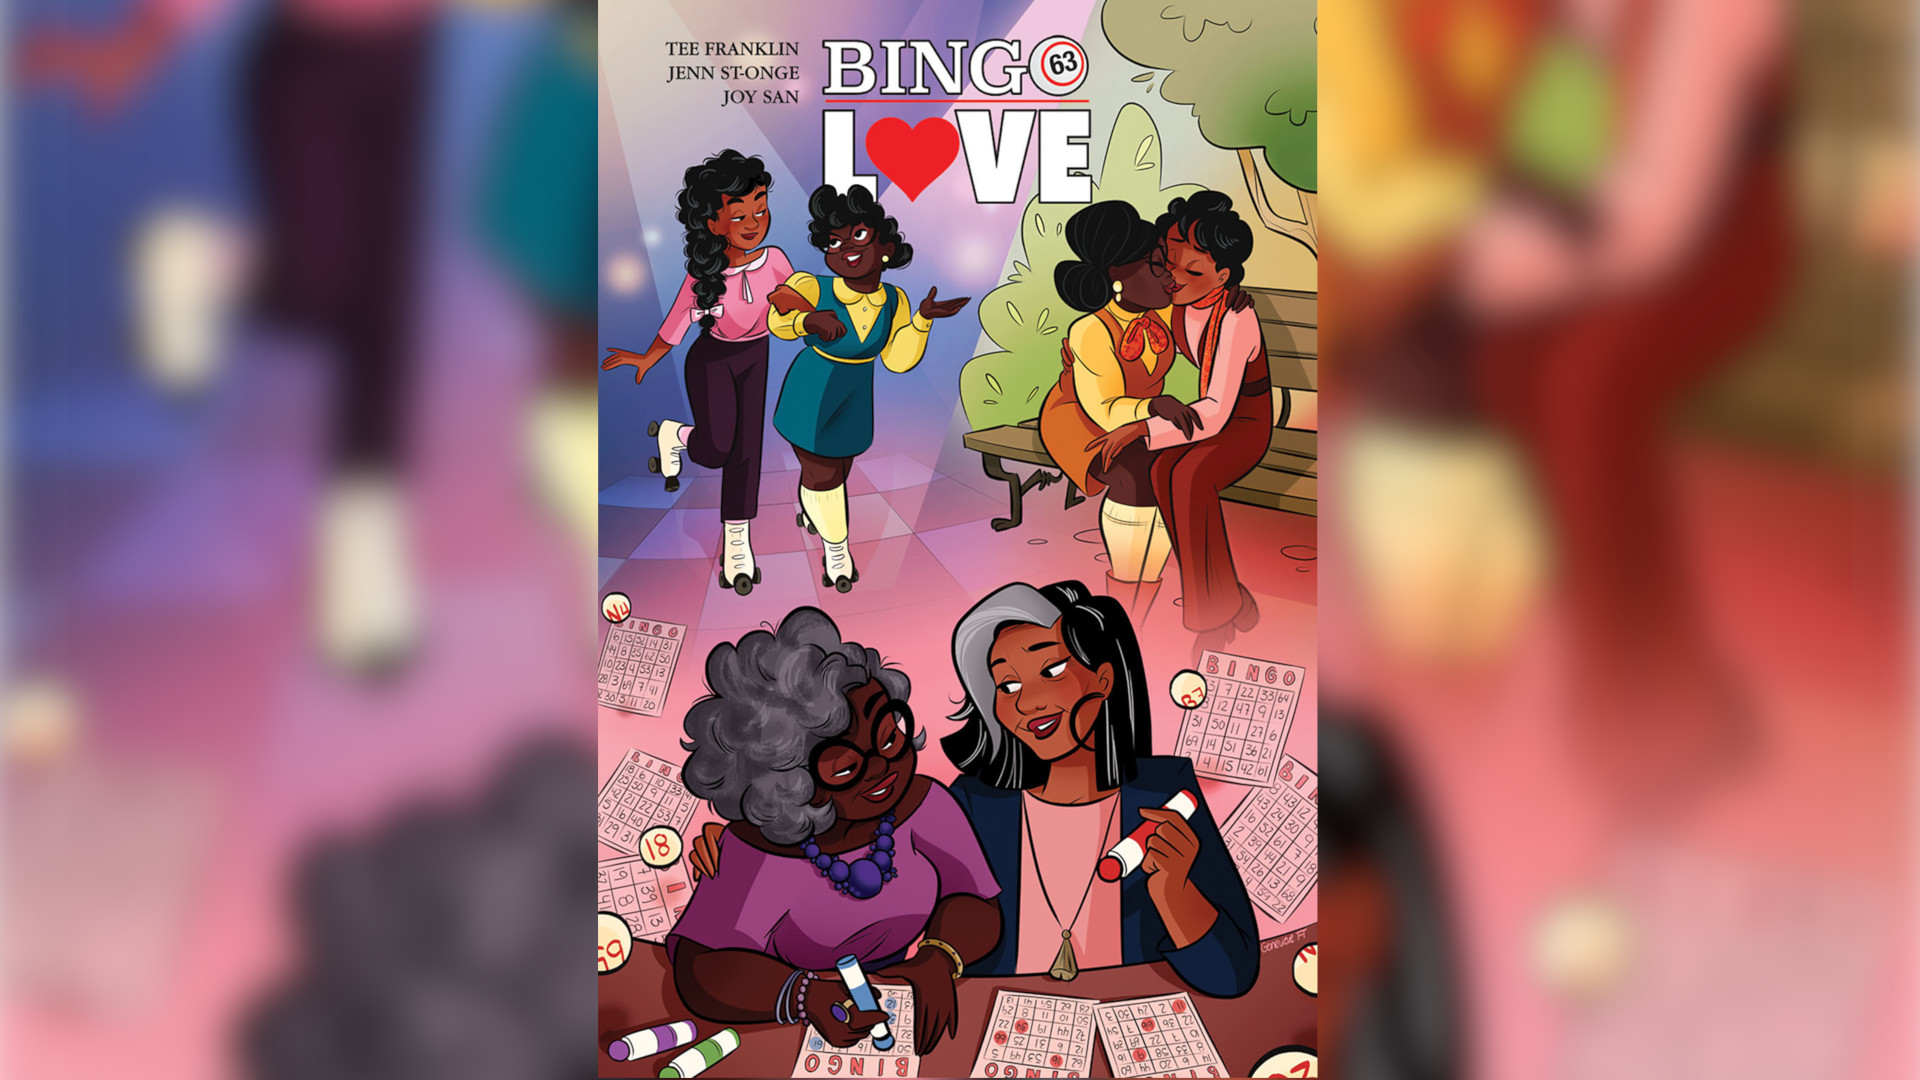 Bingo Love: Playing the romance game later in life